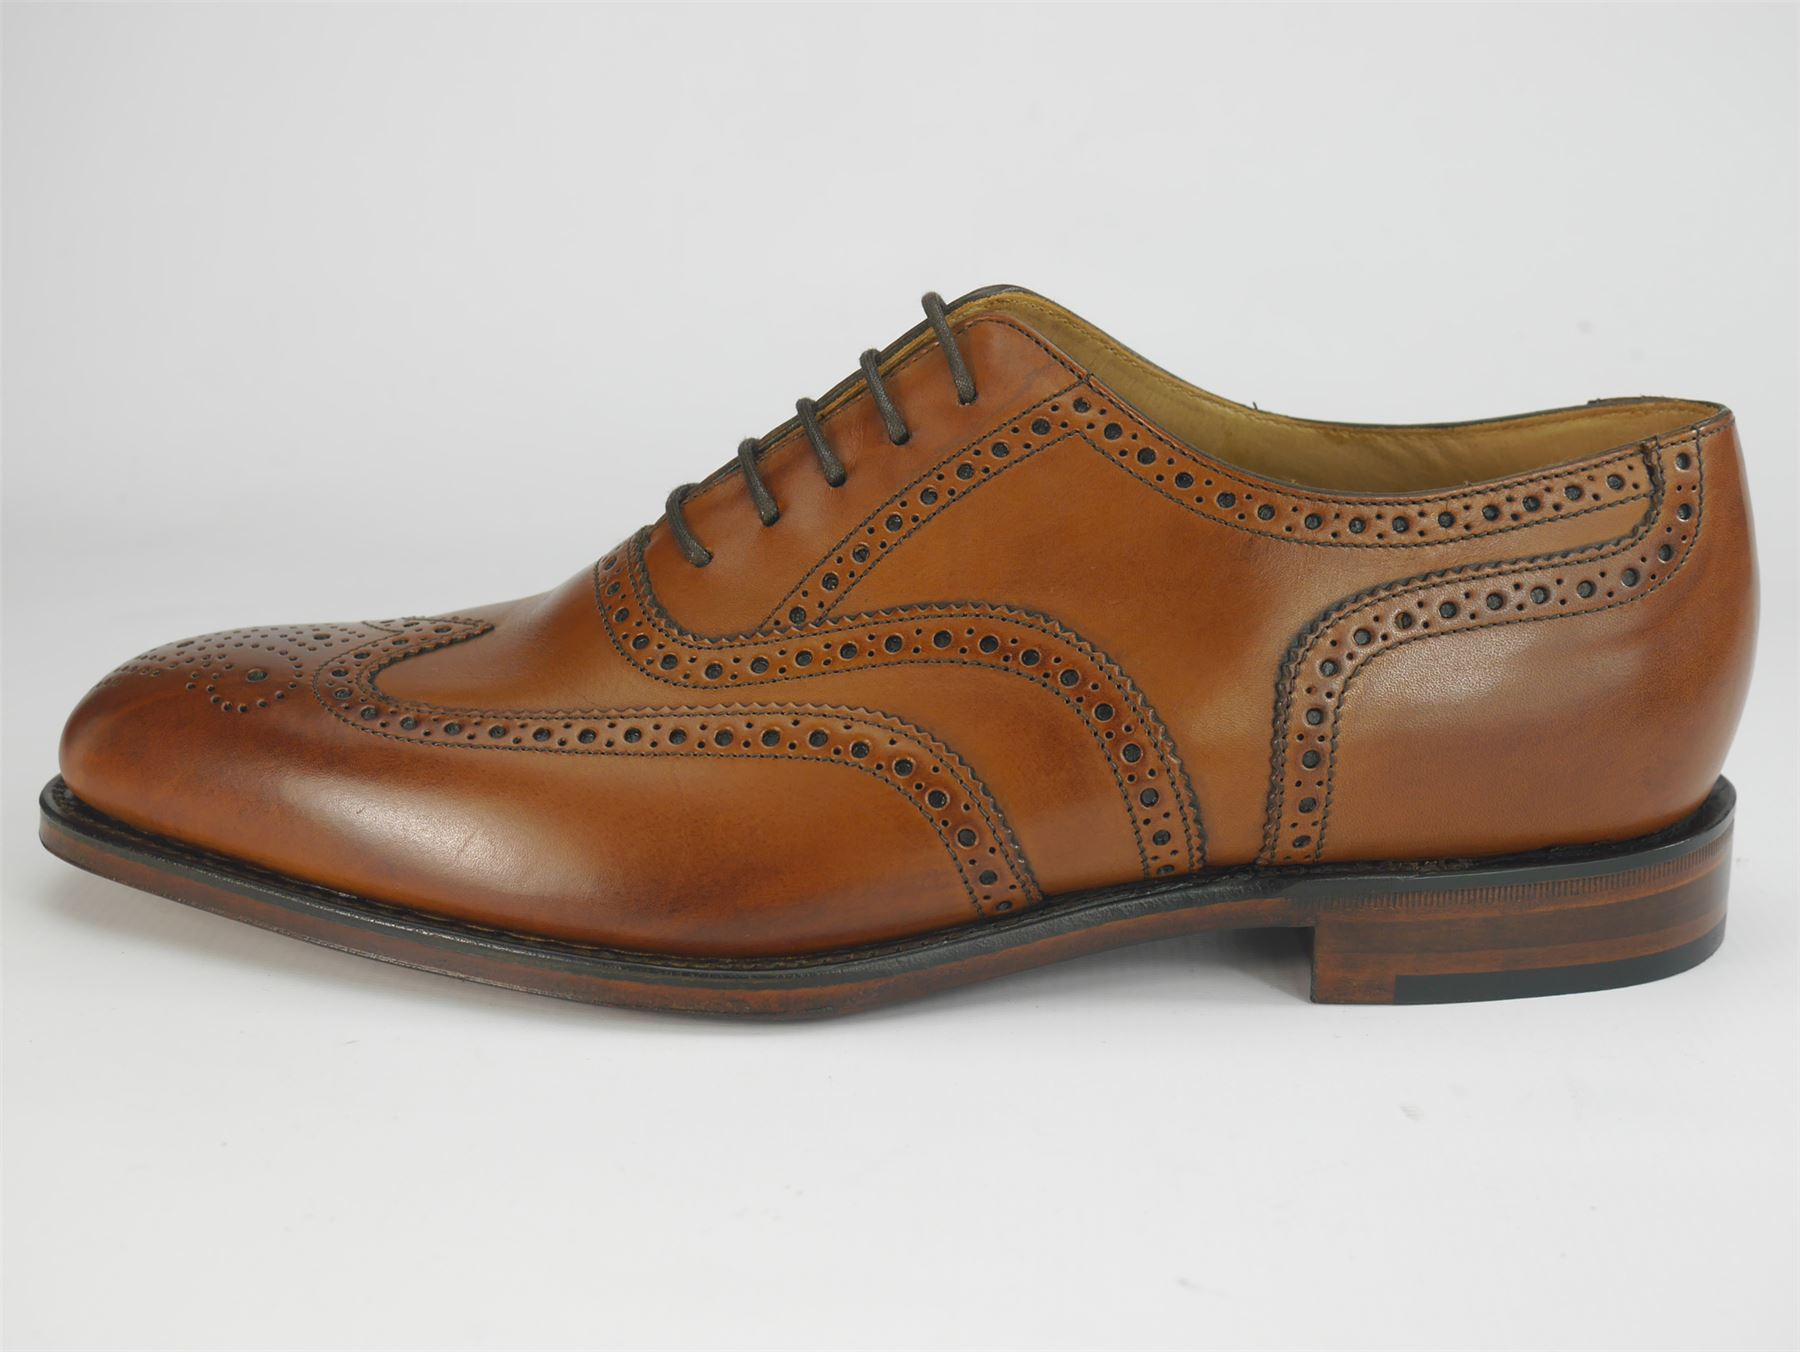 Loakes Buckingham Goodyear Welted